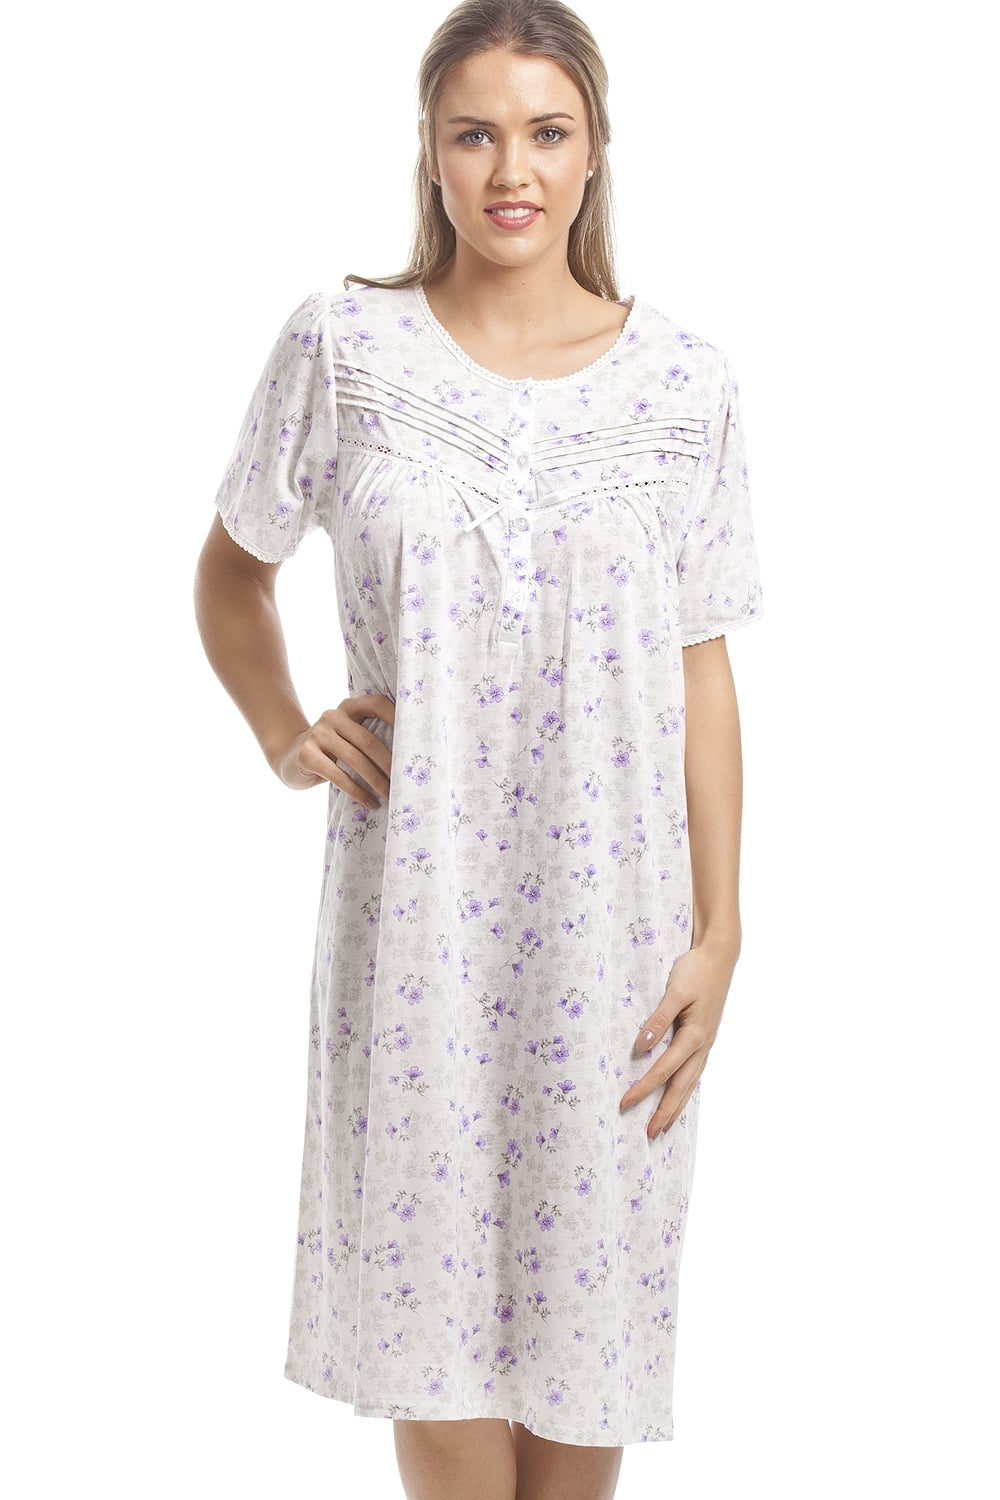 dfd2534cd2 Camille Classic Lilac Floral Print White Short Sleeve Nightdress